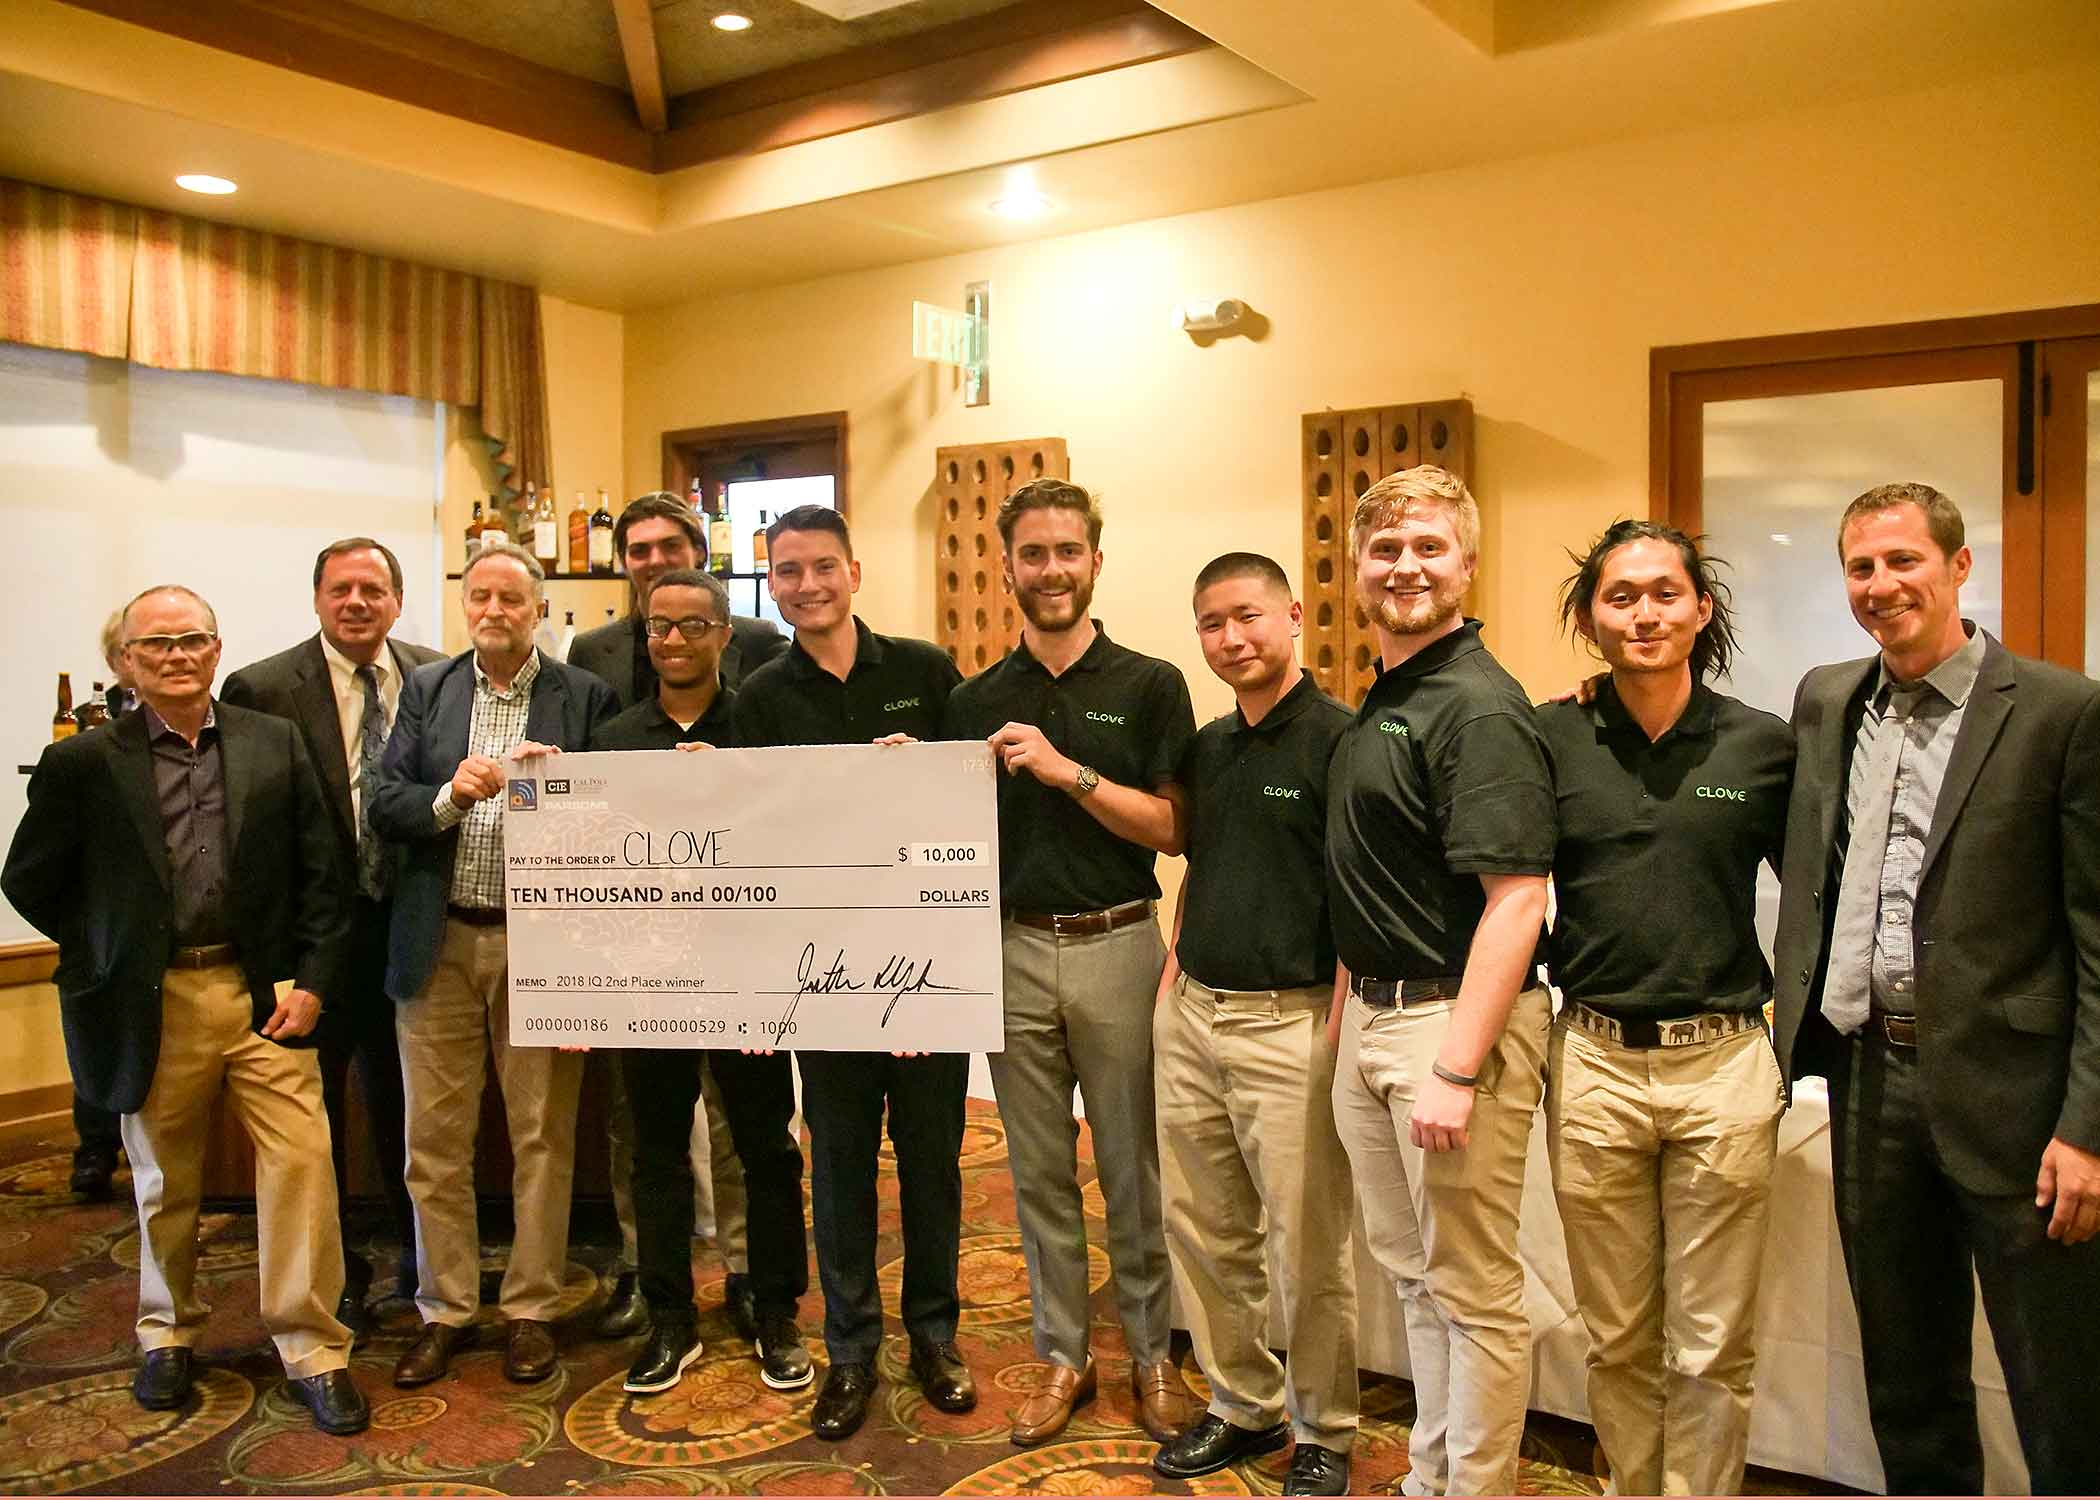 Members of Clove, a device that automatically grows and maintains up to 24 plants for culinary use with little to no user interaction, stand with judges after receiving the 2018 Innovation Quest's $10,000 second-place honor on April 28 at the San Luis Obispo Country Club. The competition was sponsored by Cal Poly's Center for Innovation and Entrepreneurship.